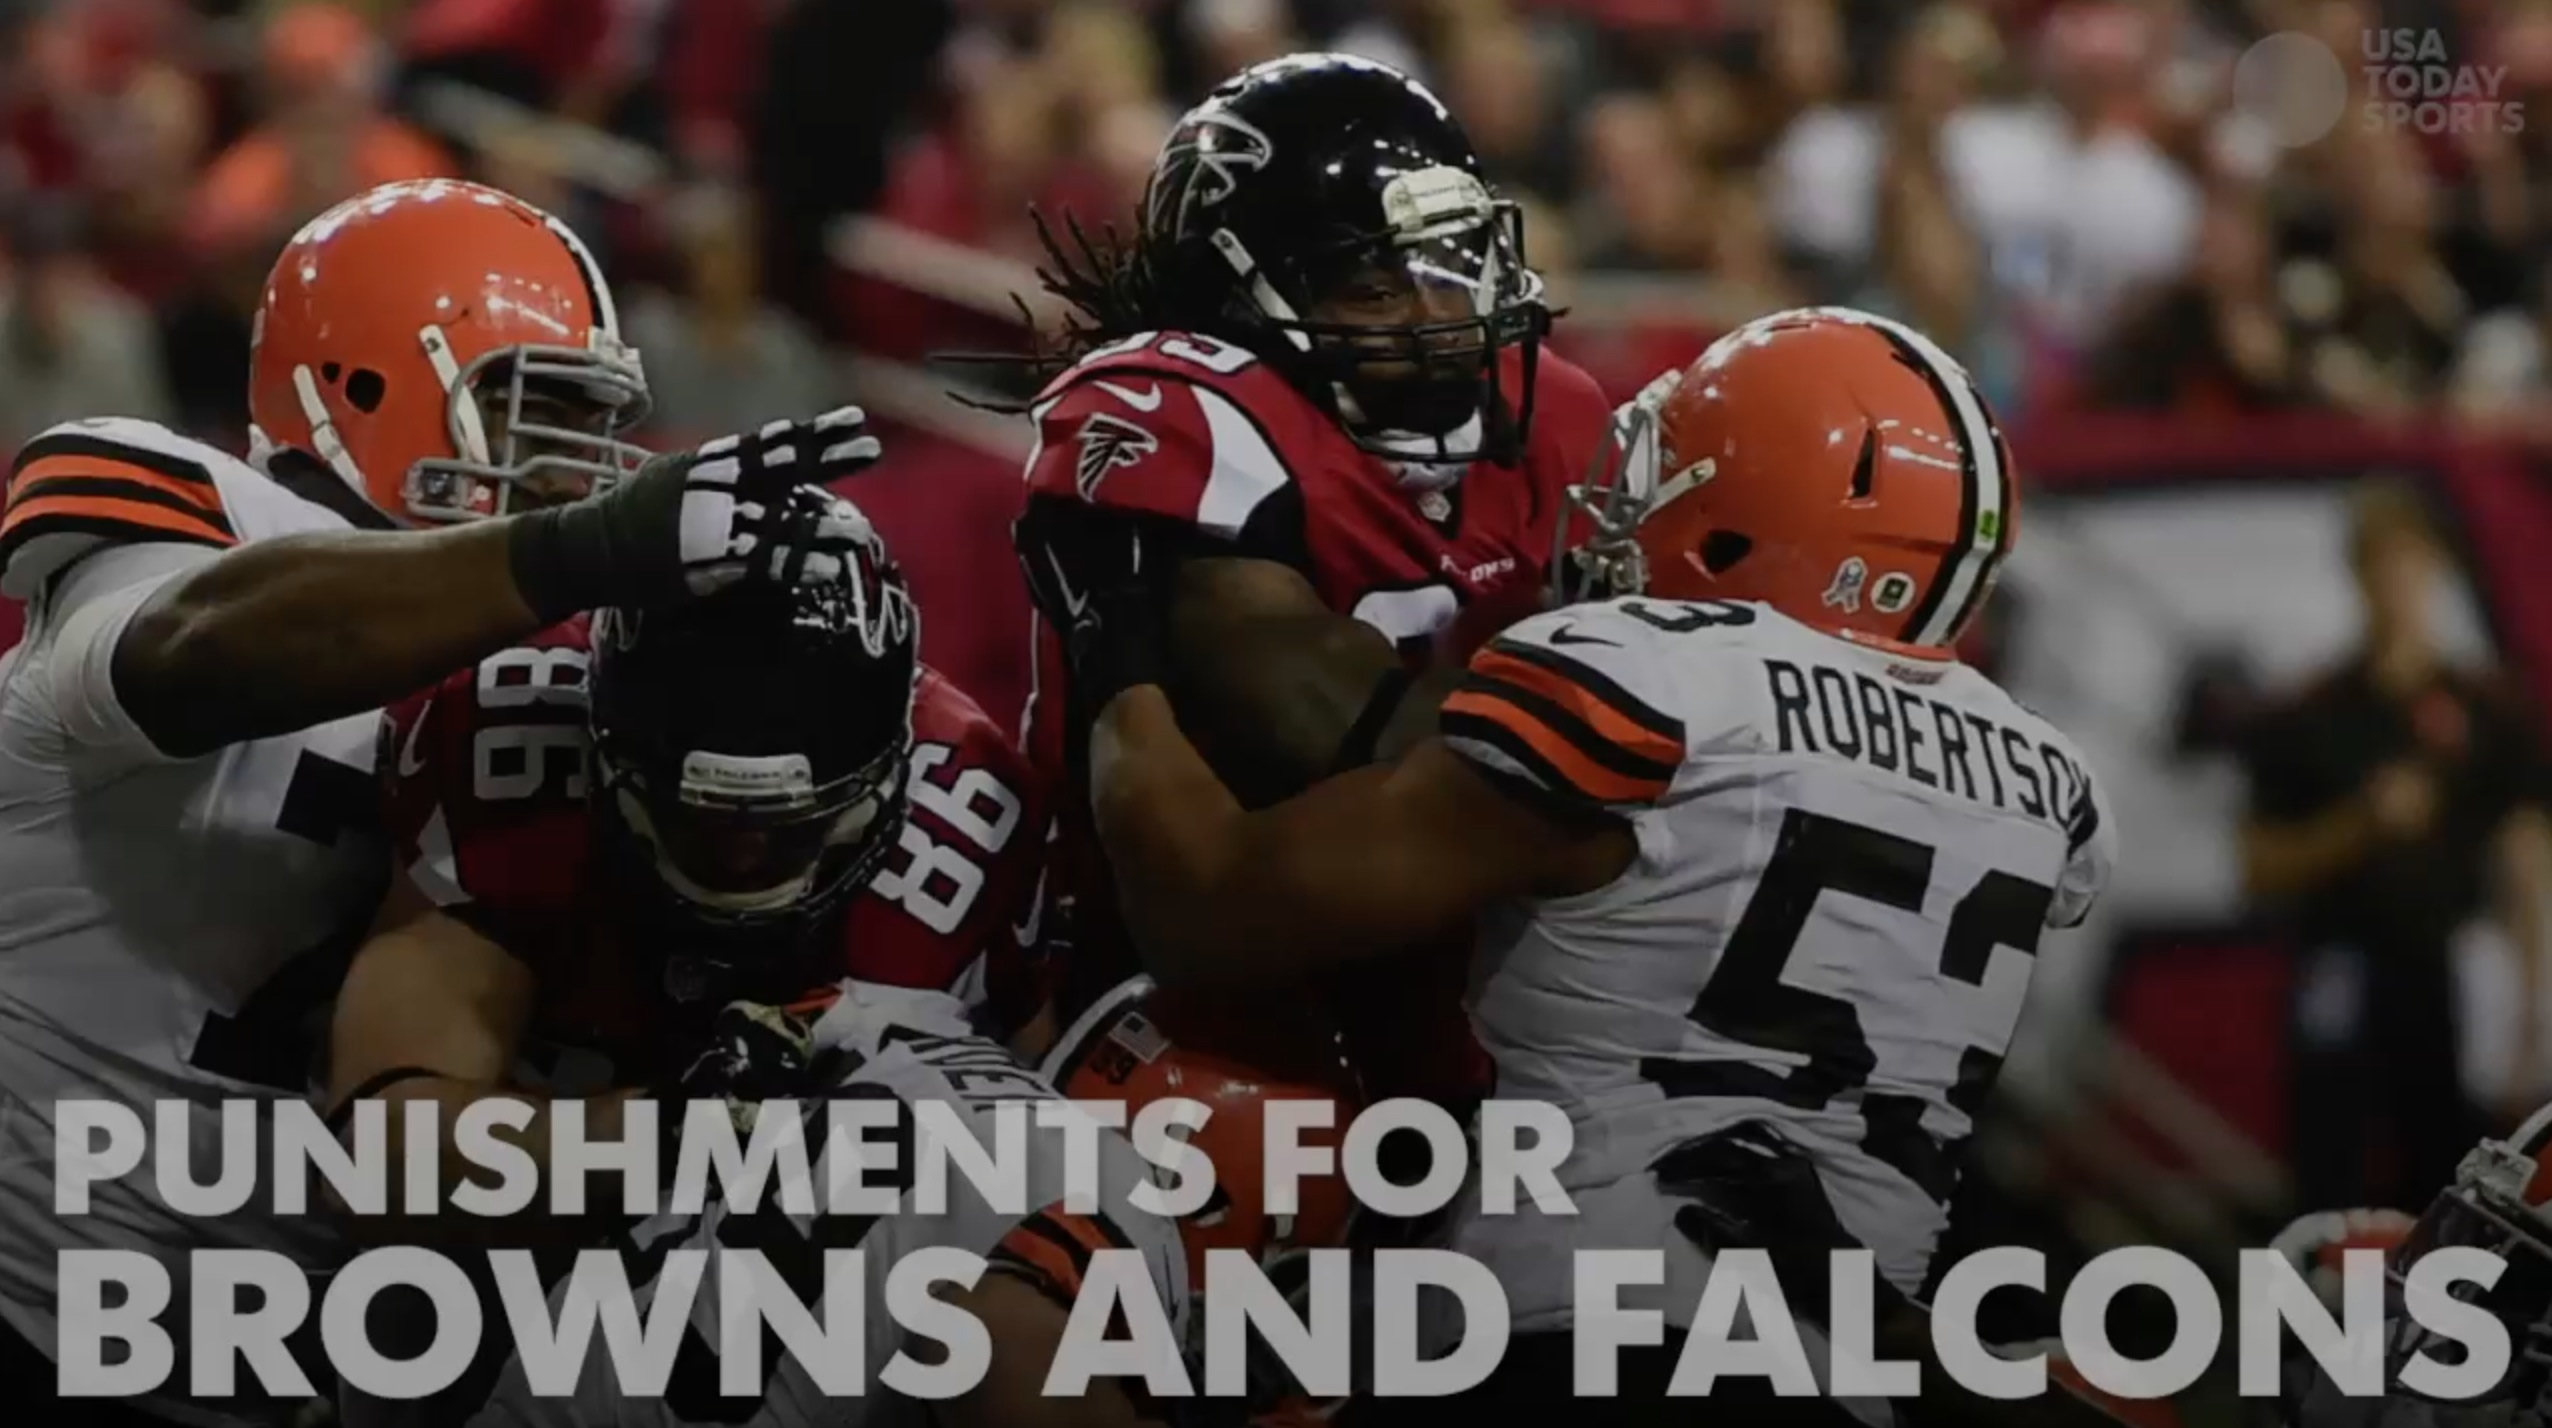 Browns, Falcons punished by NFL for violations